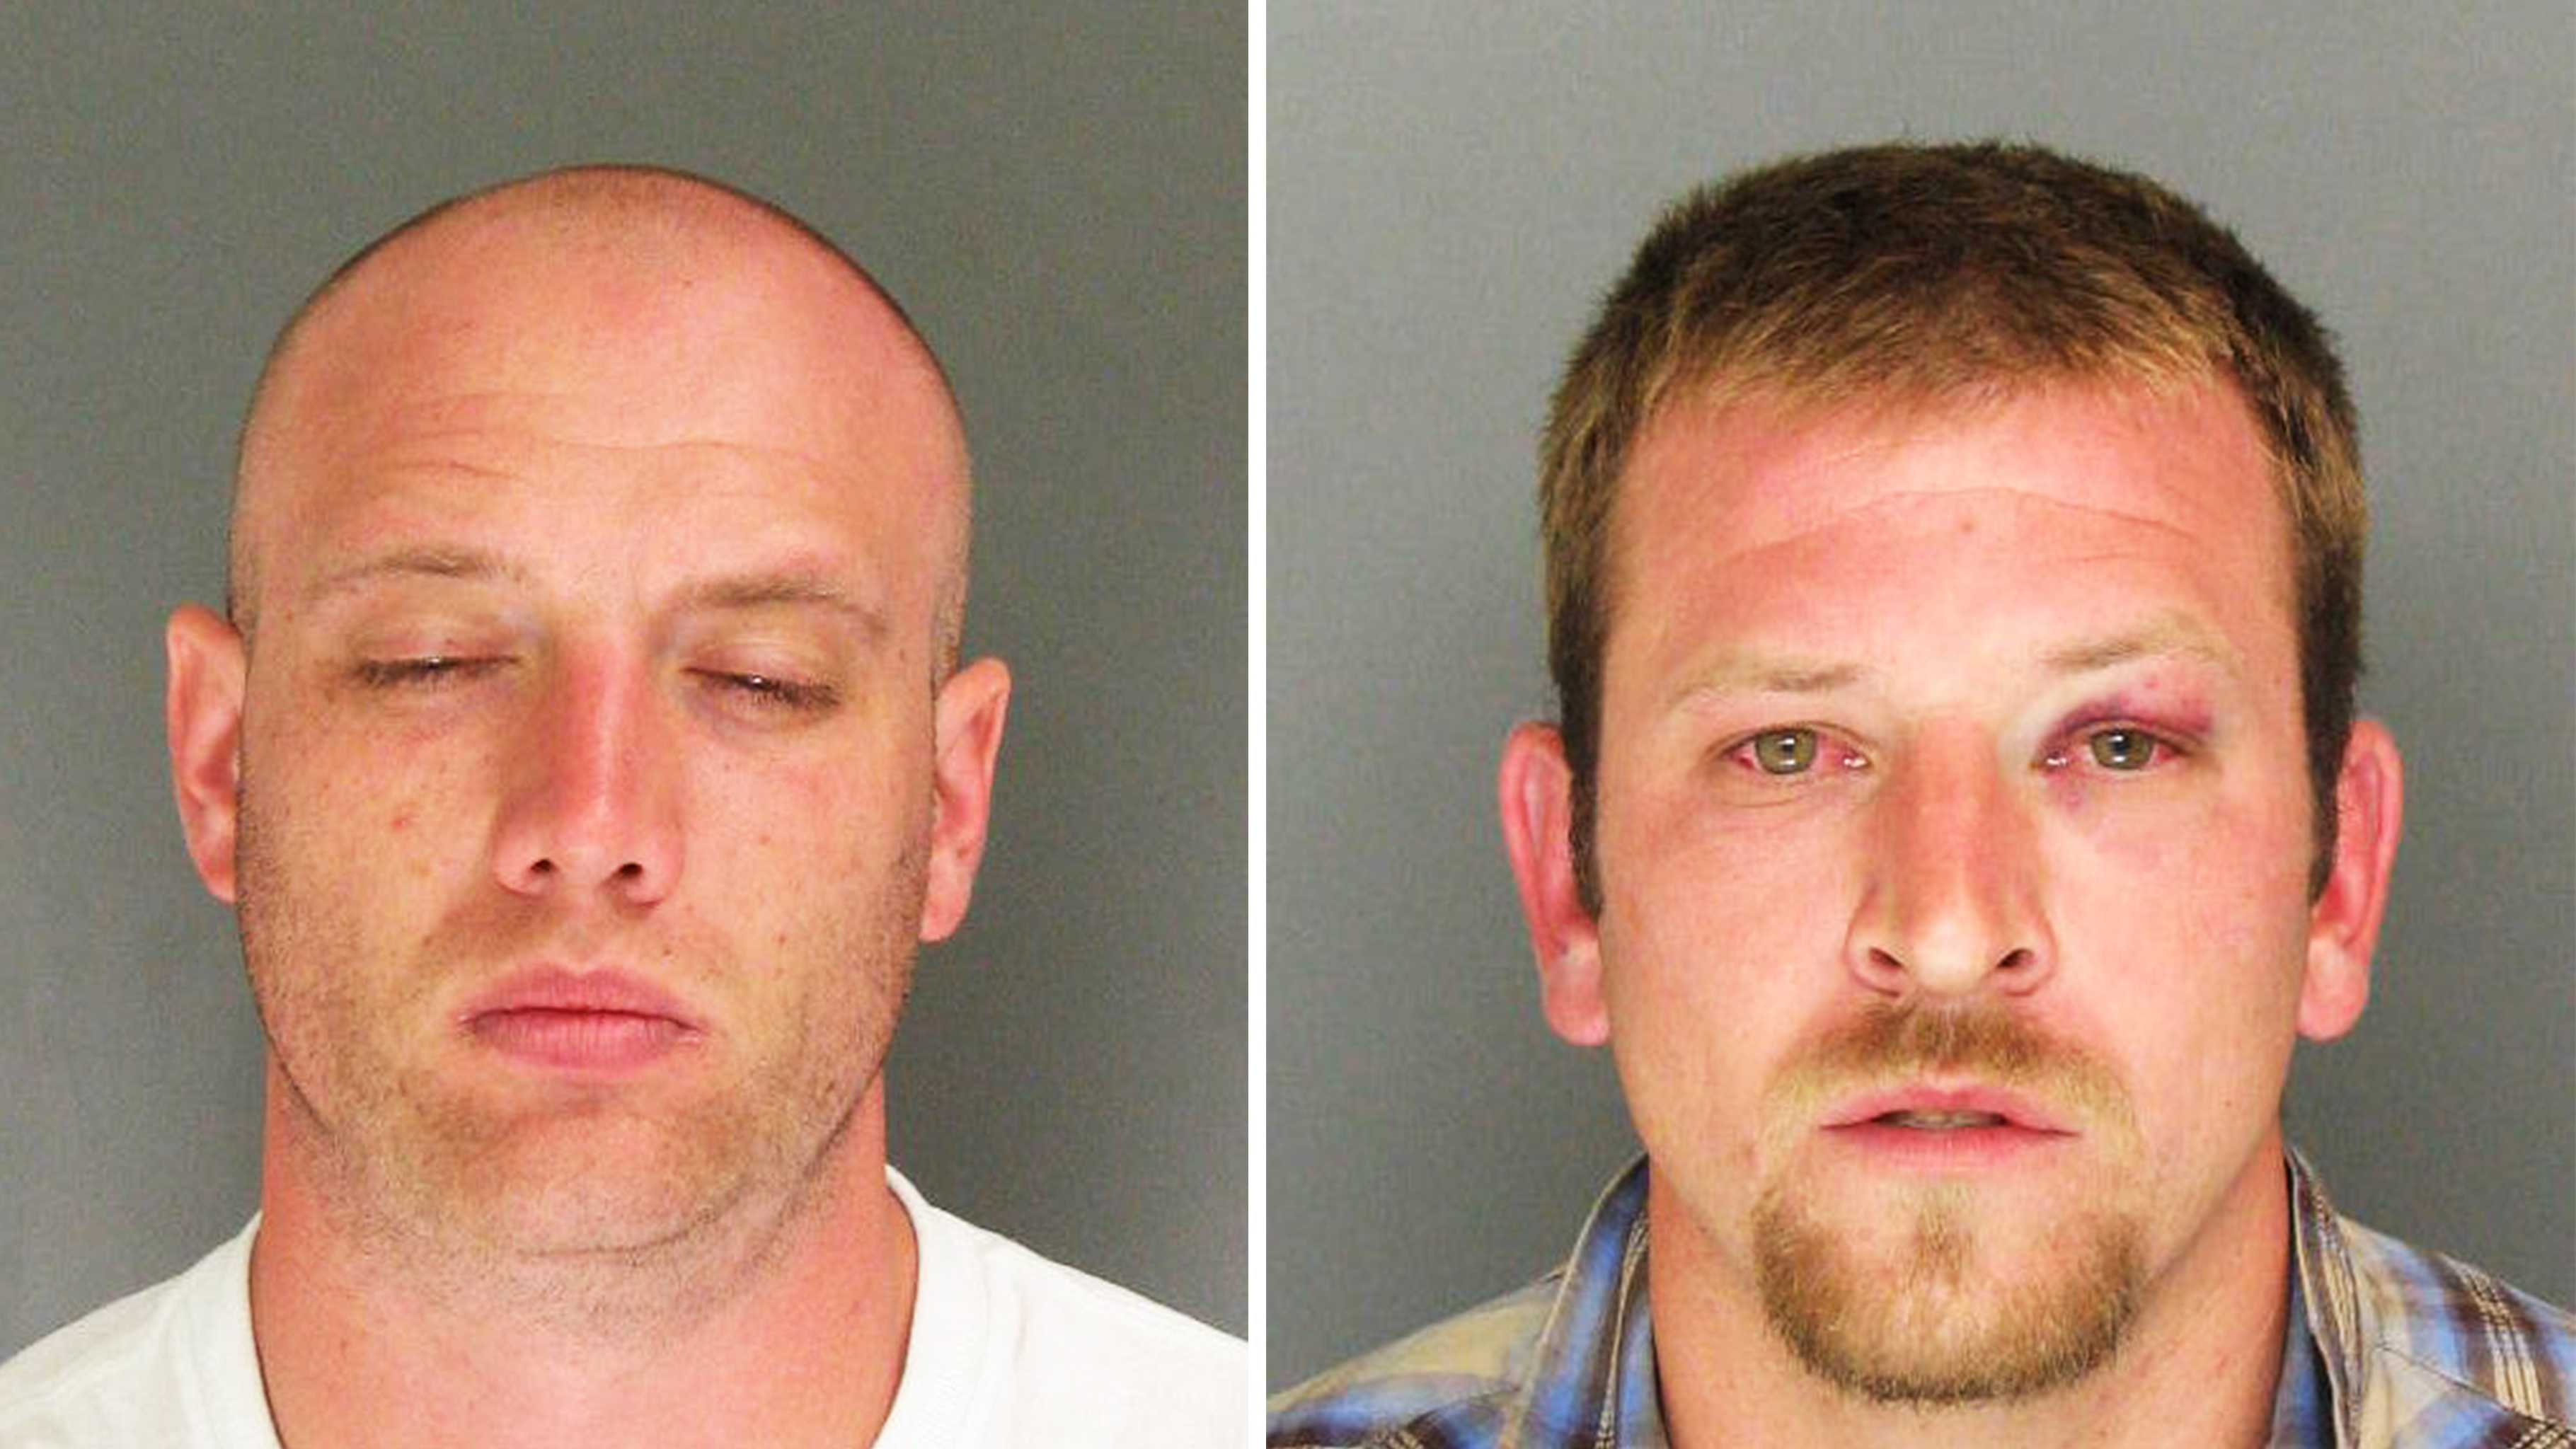 Michael Hague, left, was arrested. Dino Moschetti, right, is wanted by the sheriff.